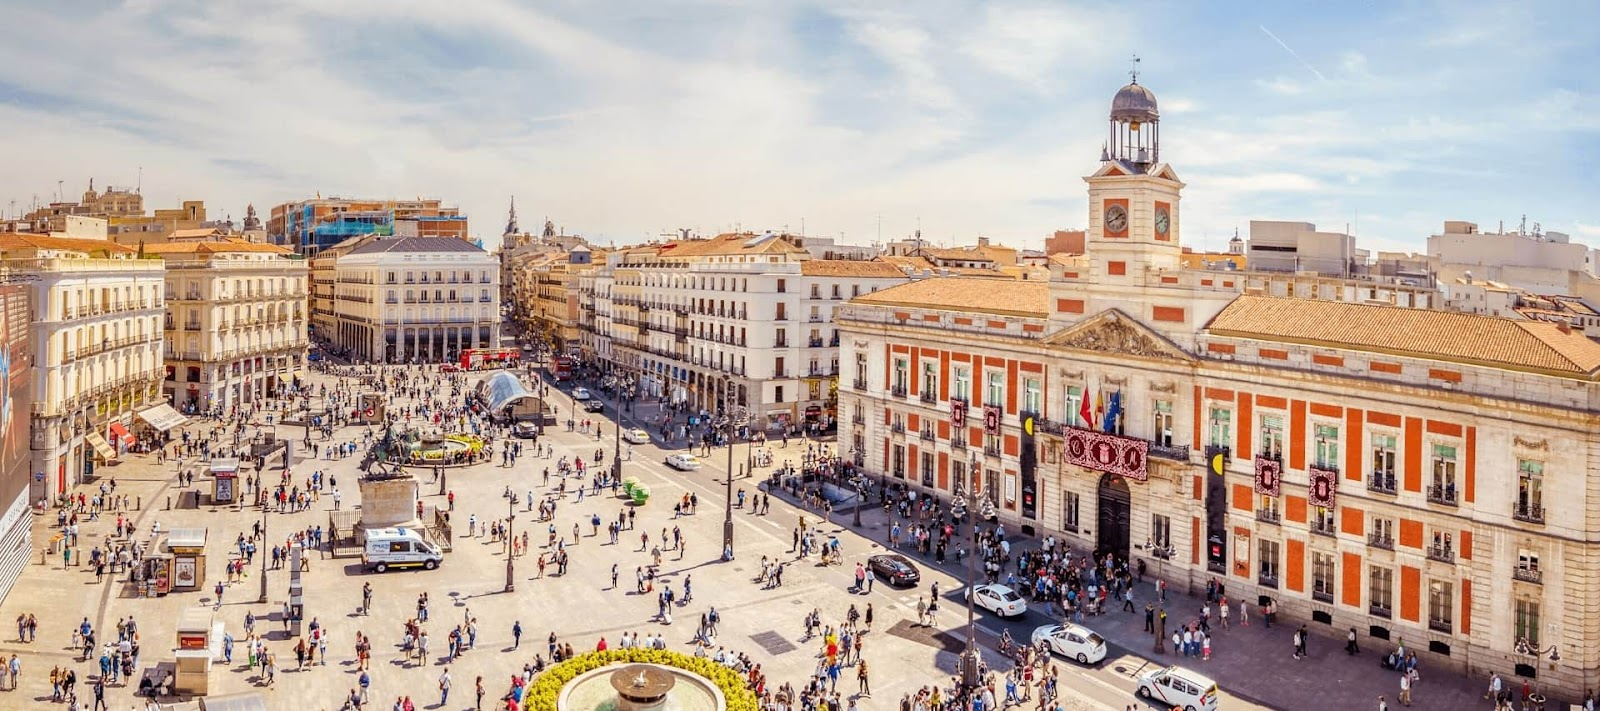 https://www.clickandgo.com/blog/2020/01/15/how-to-spend-the-perfect-weekend-in-madrid/